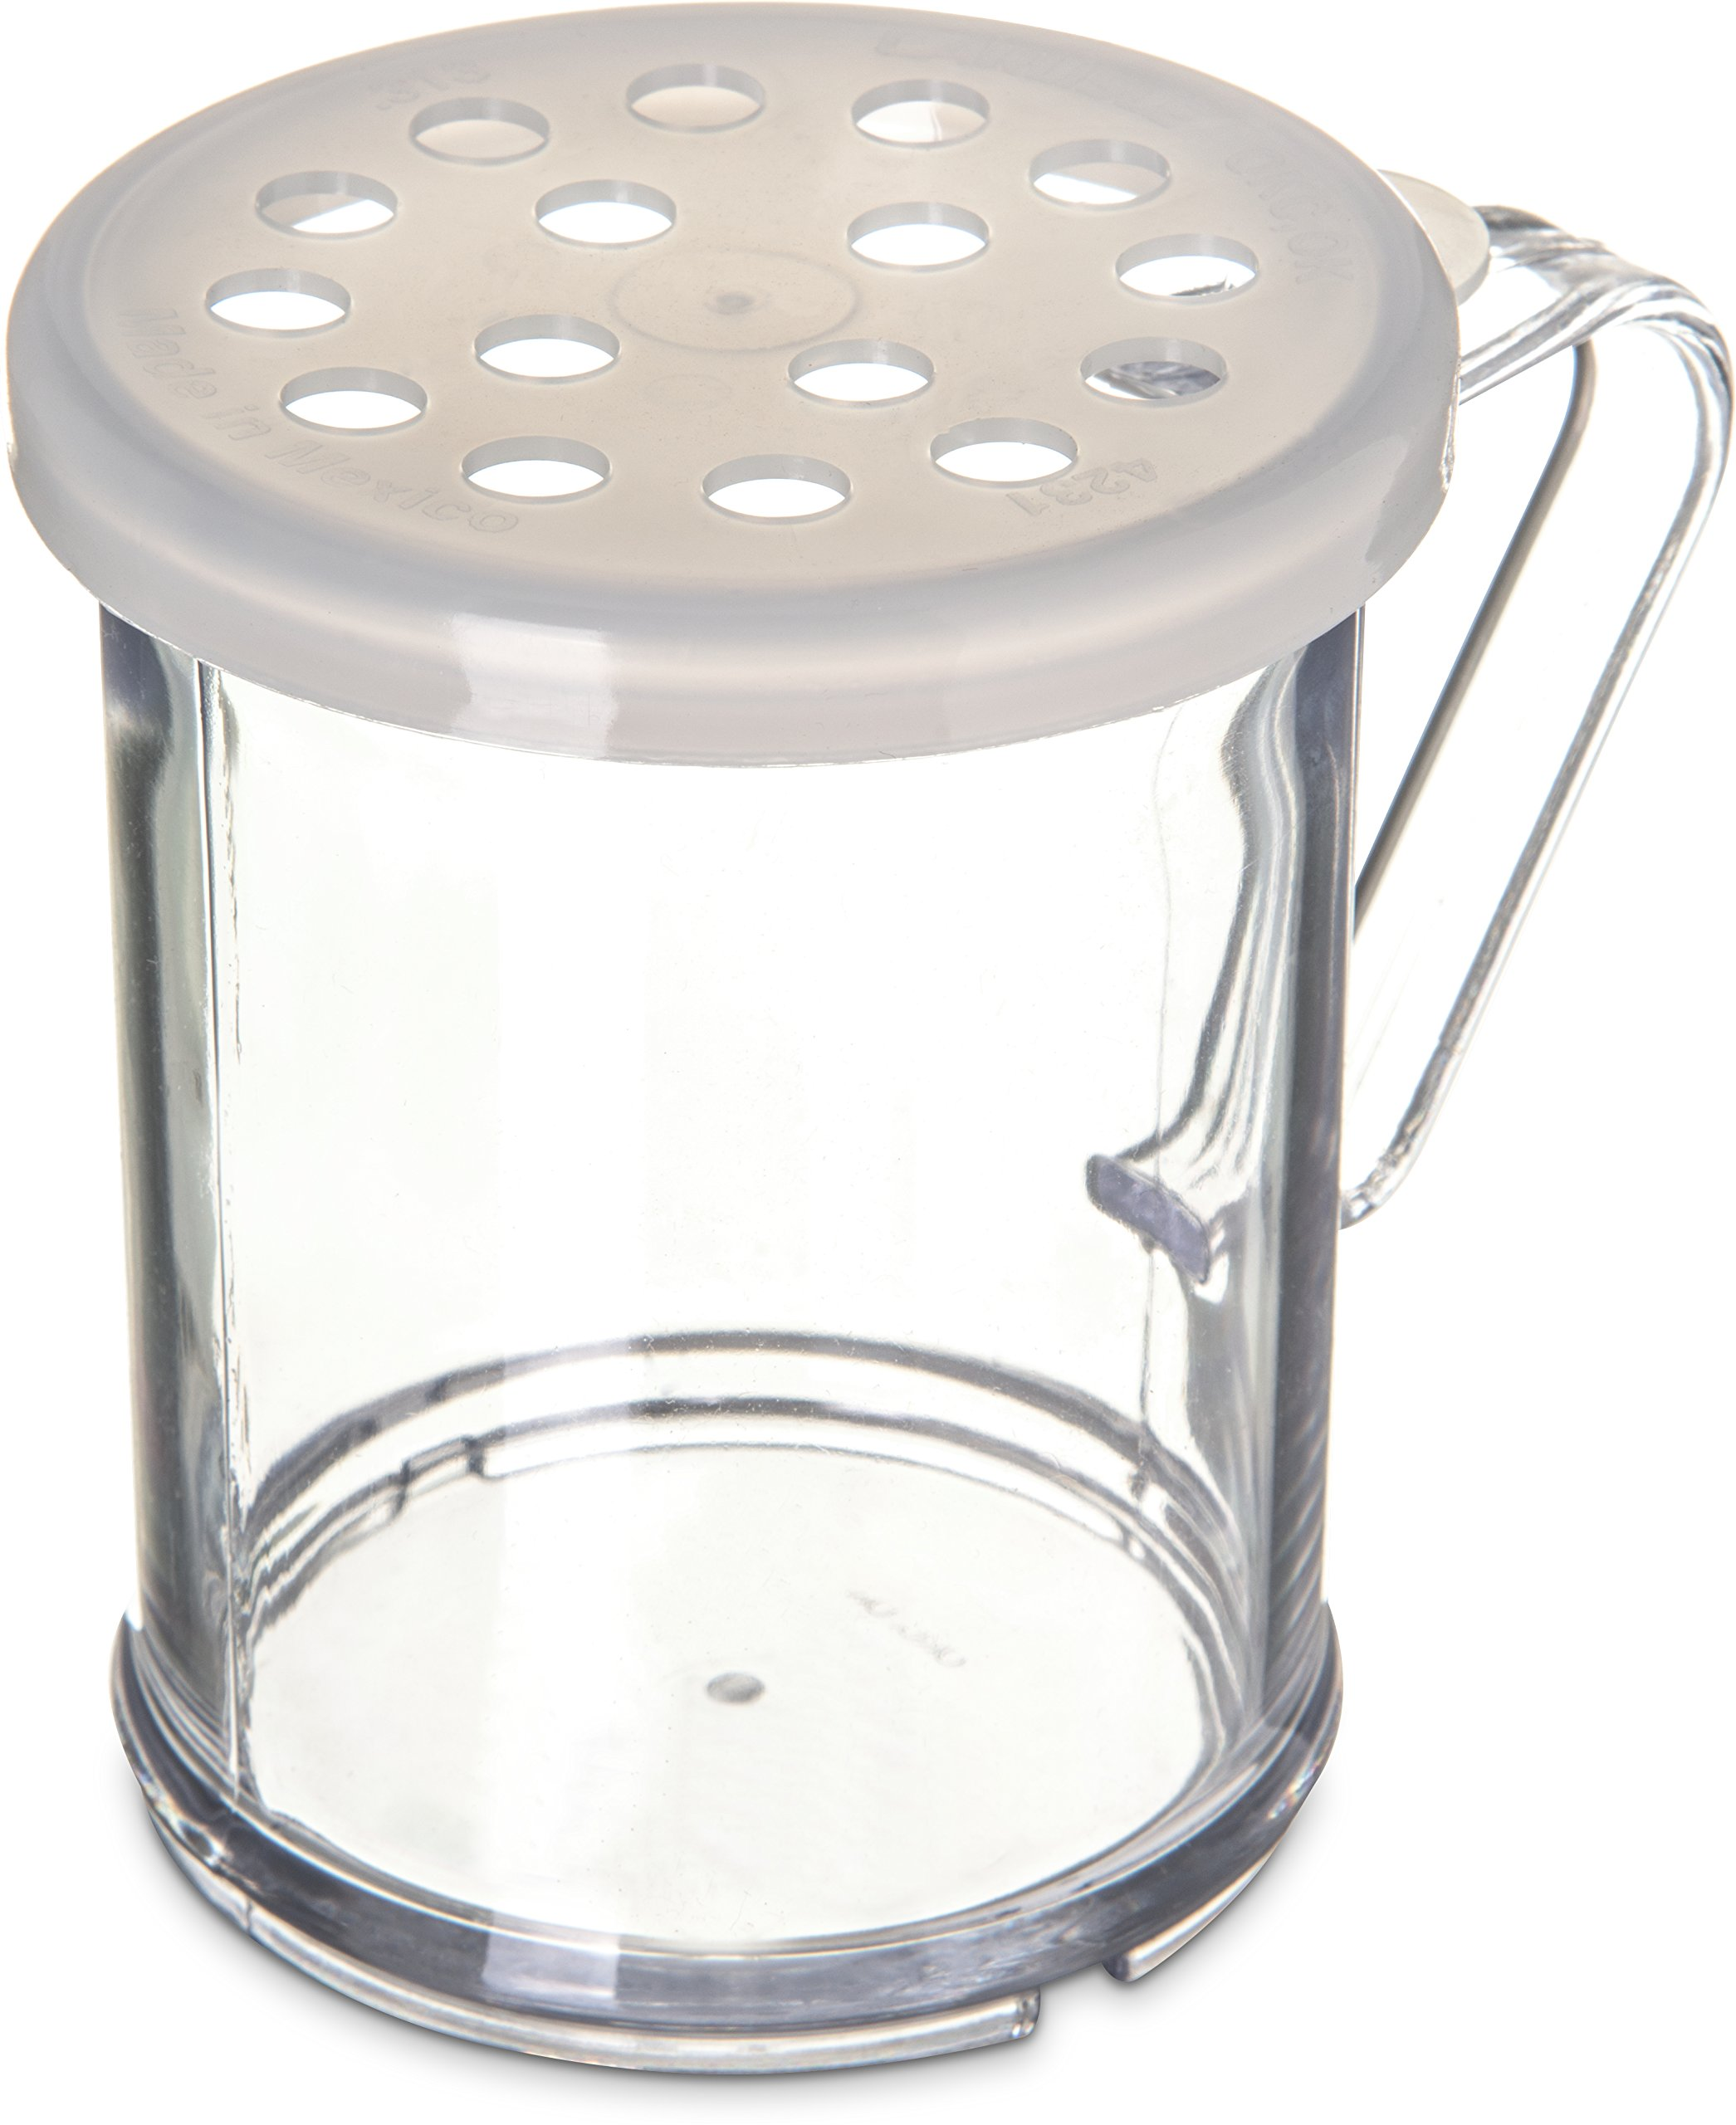 Carlisle 423030 Polycarbonate Parsley Shaker/Dredge with Lid, 1 Cup Capacity, Translucent (Case of 12)